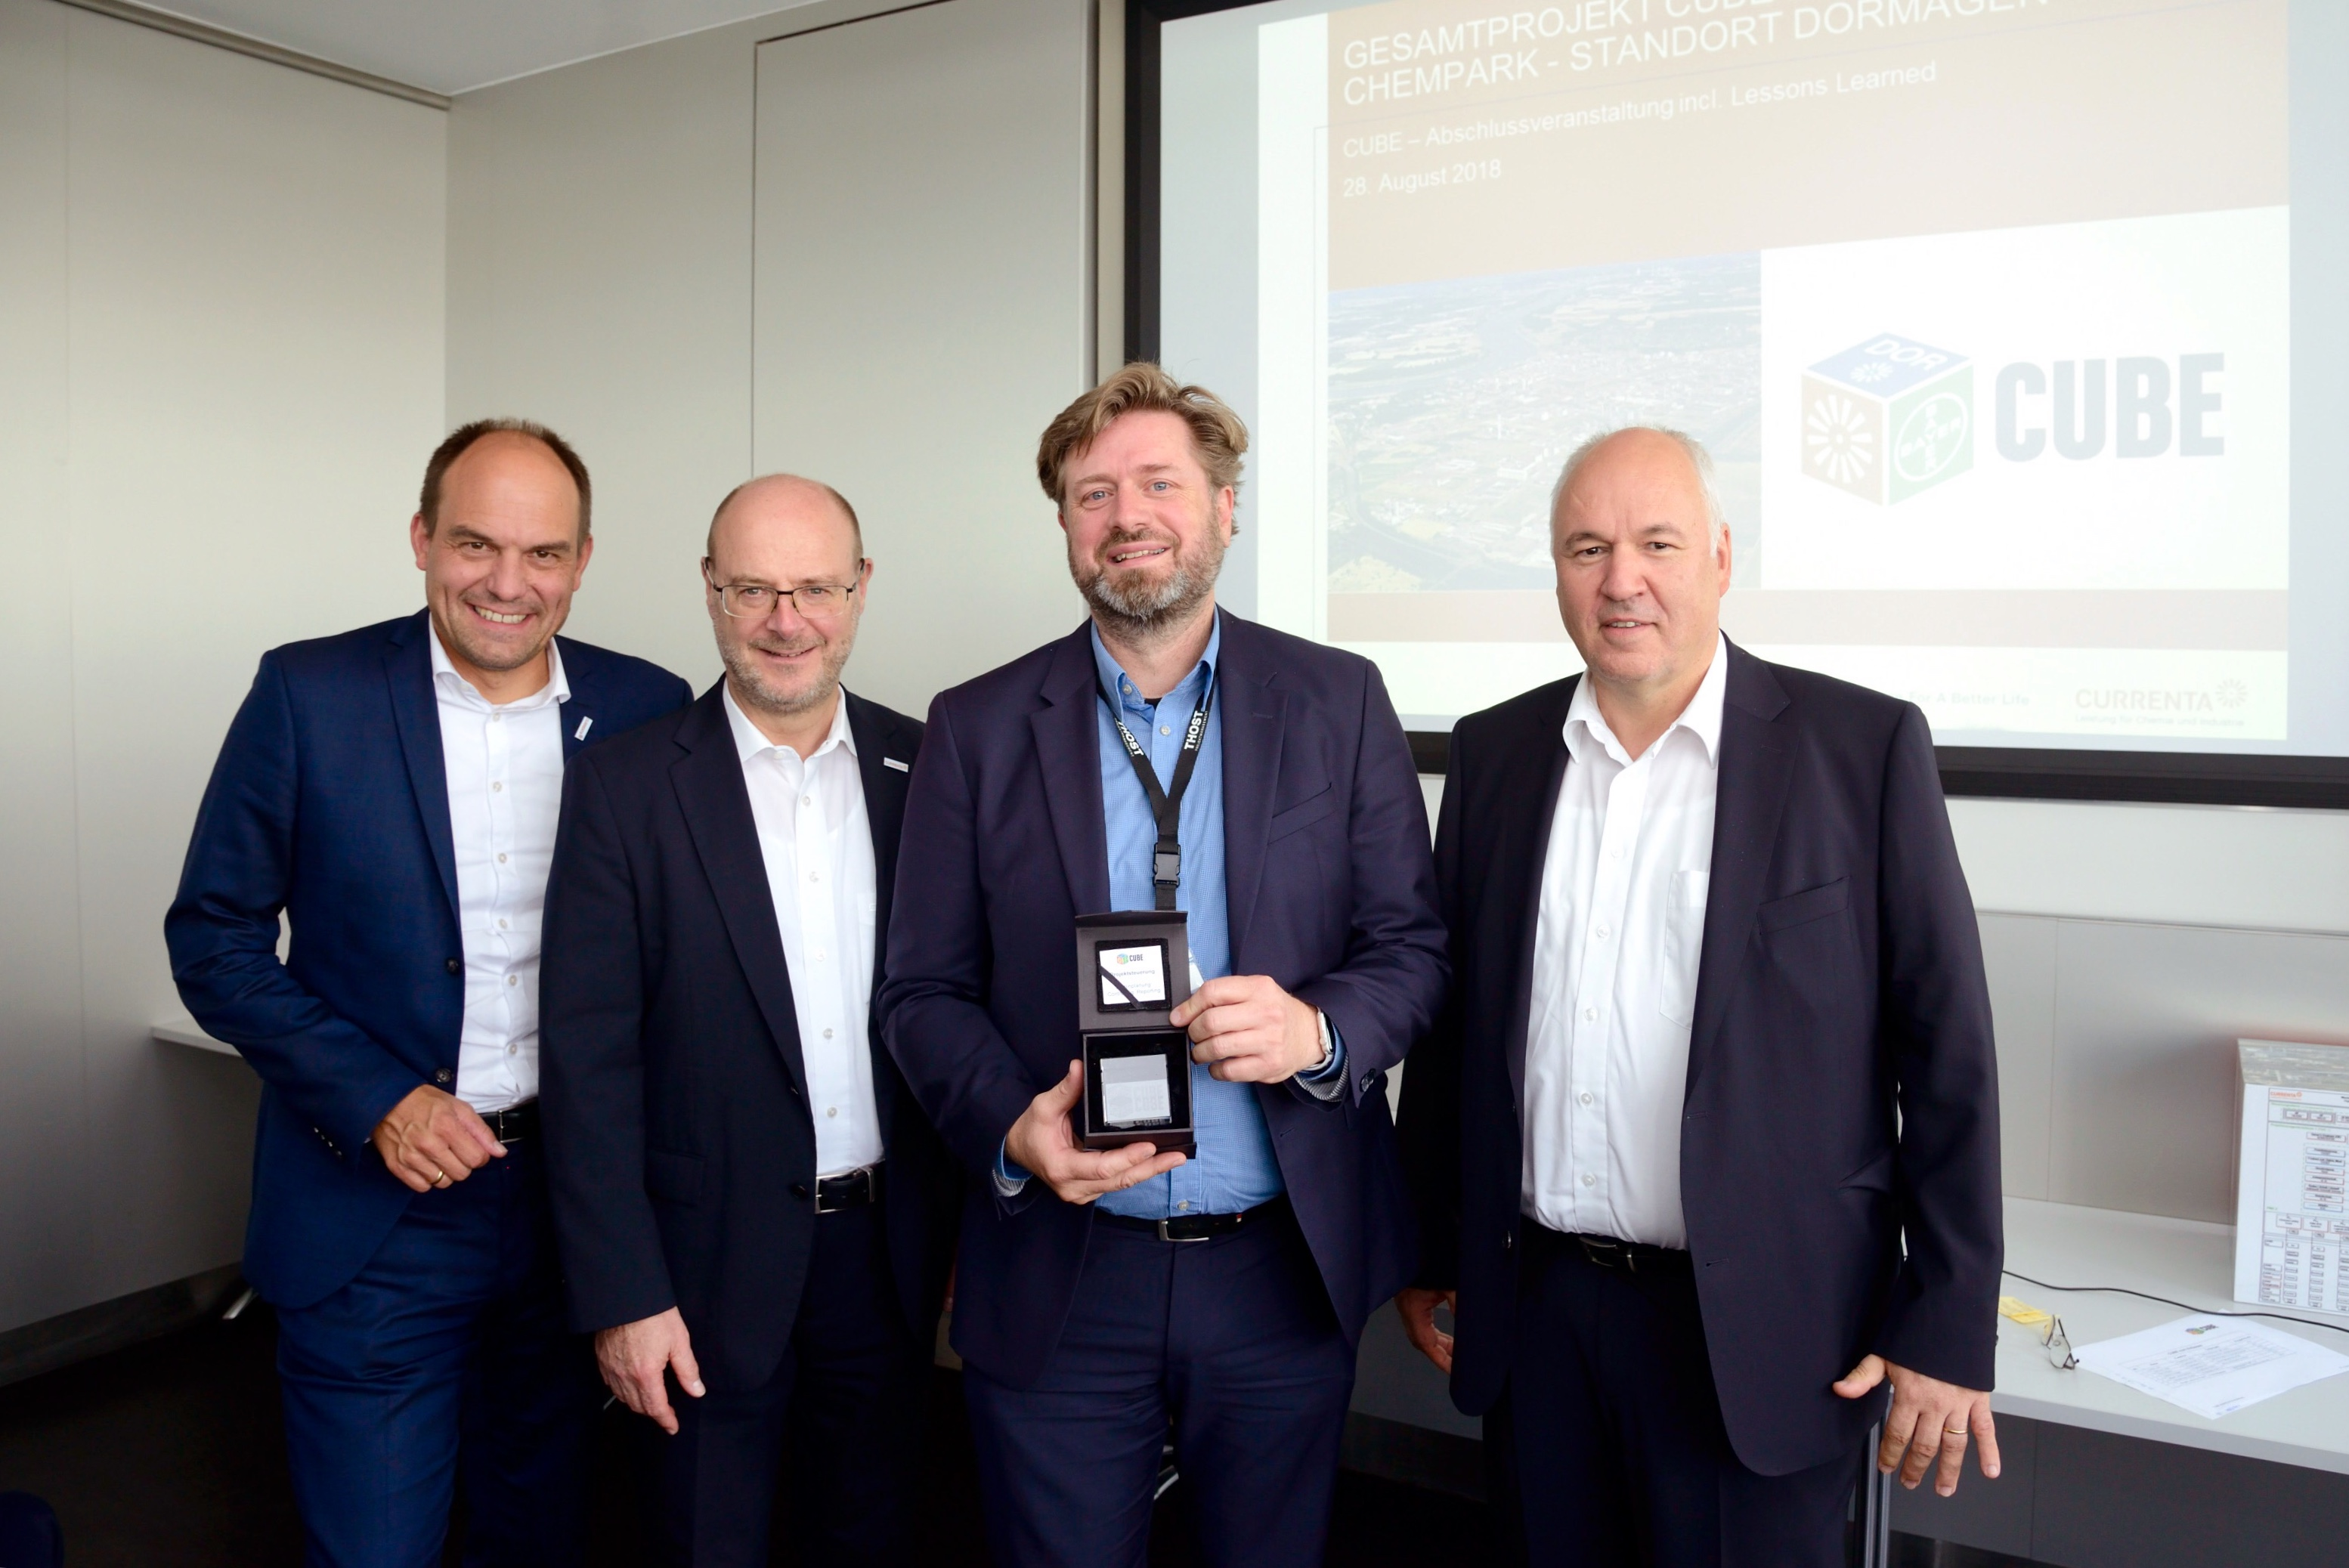 CURRENTA and Bayer honor THOST for successful project management